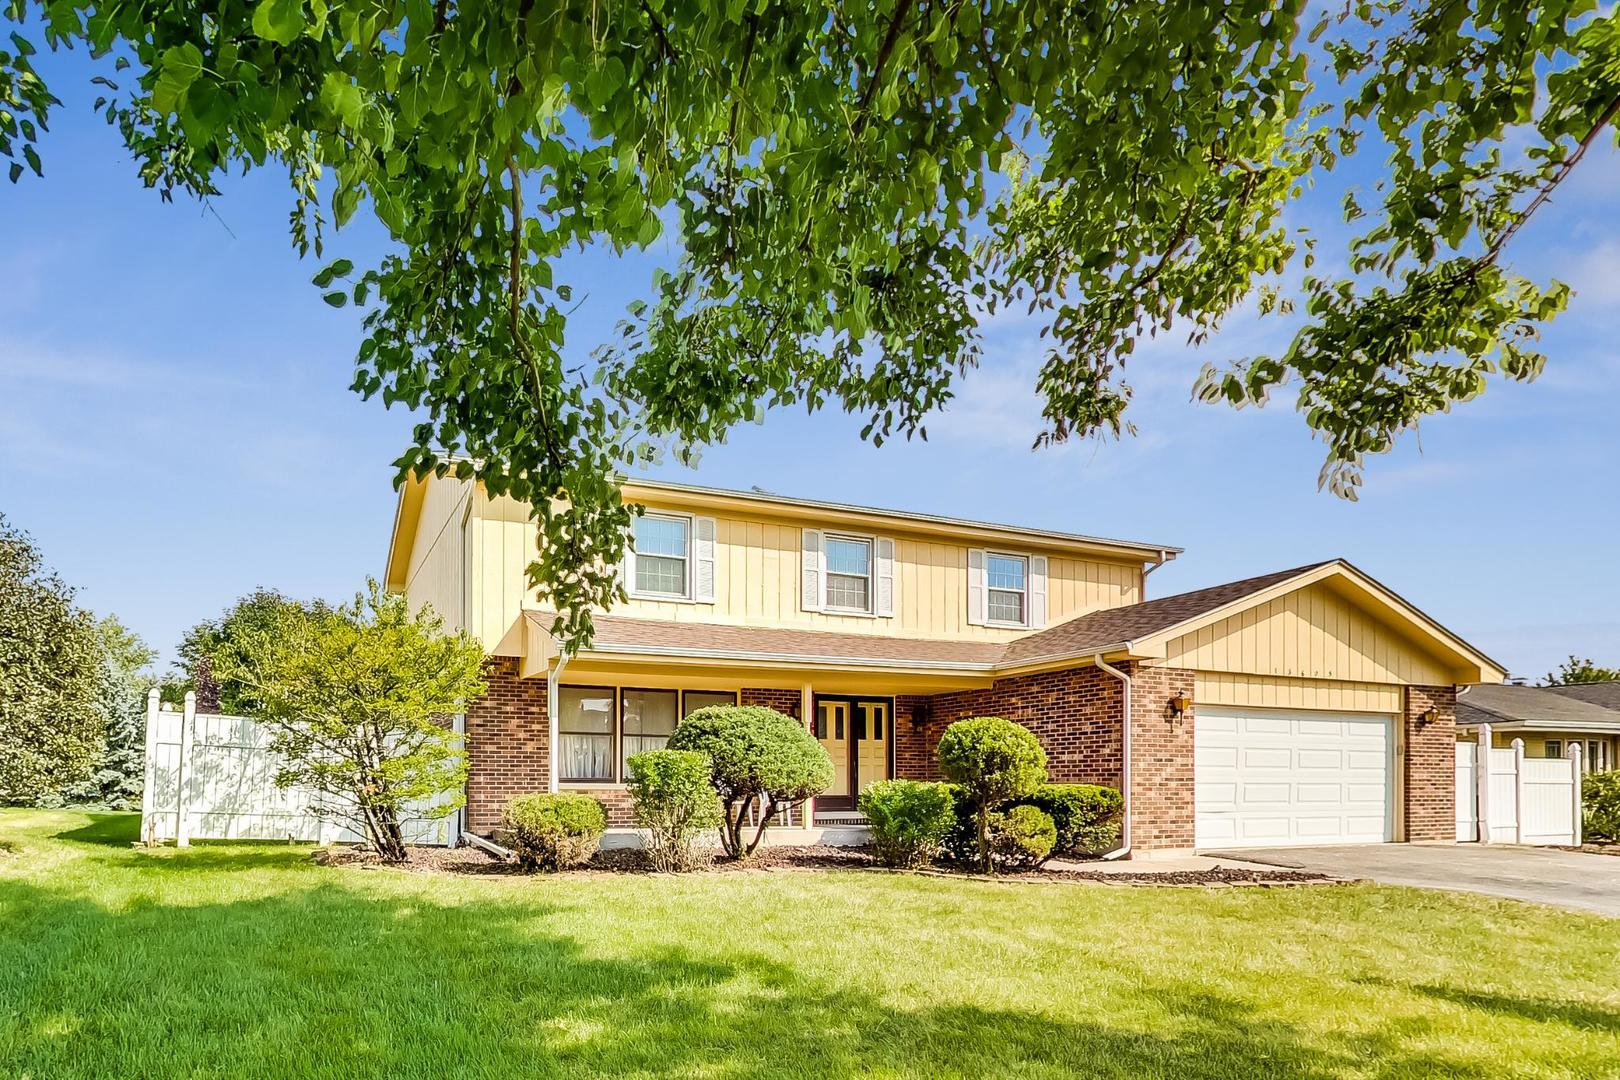 13605 Inverness Drive, Orland Park, IL 60462 - #: 10883057